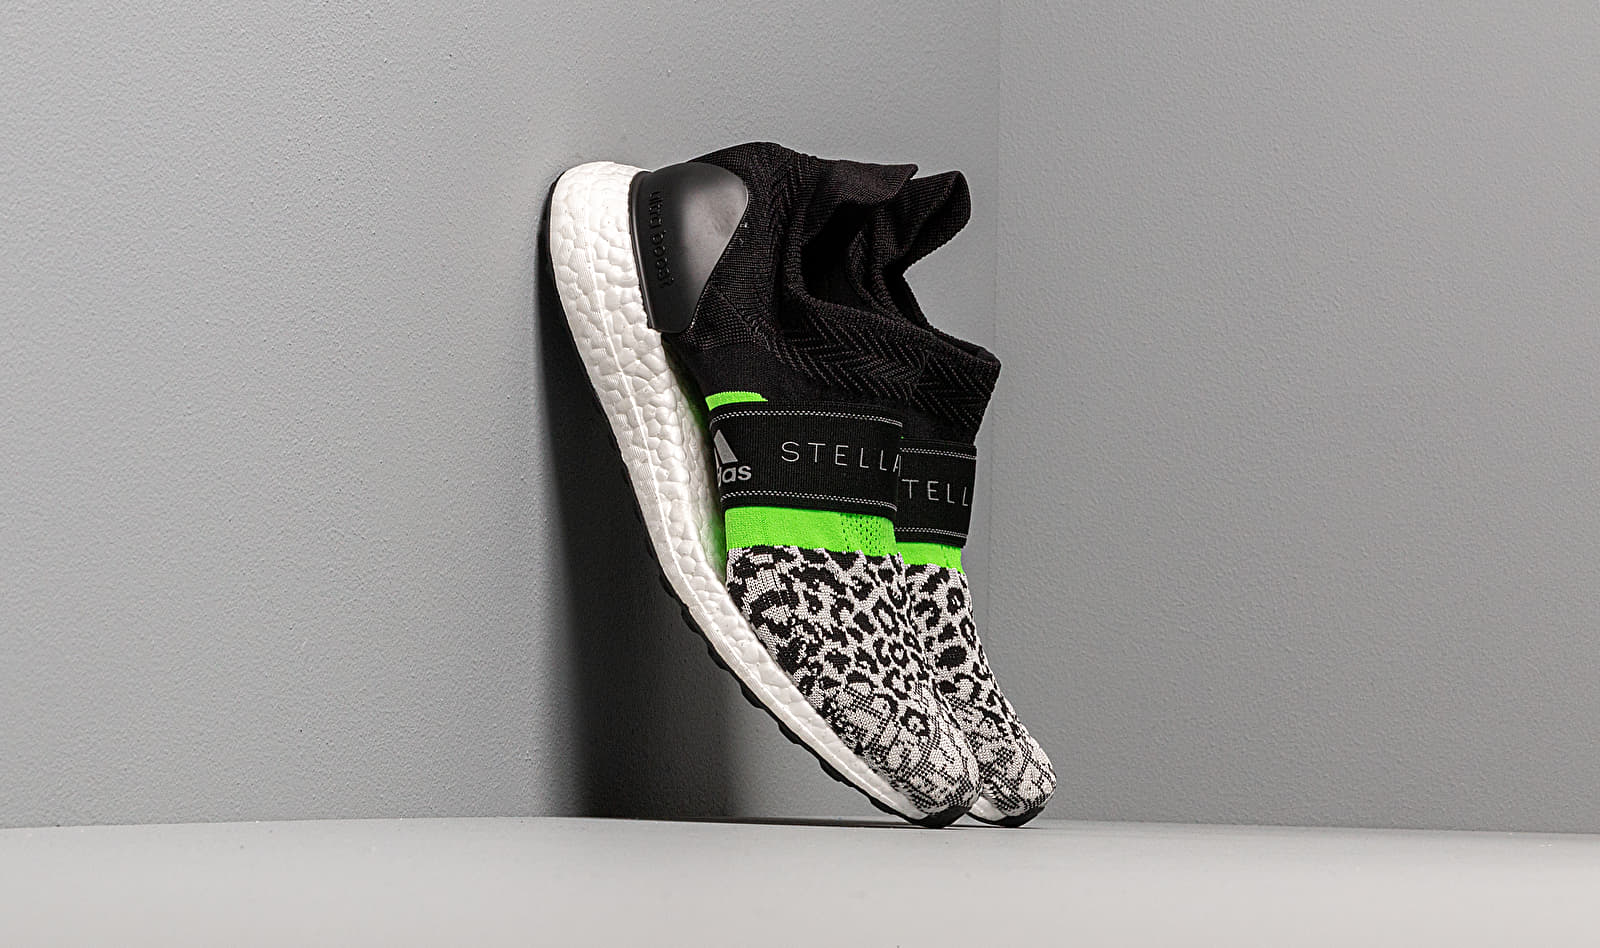 adidas x Stella McCartney UltraBOOST X 3D S BlackWhite Core White Solar Green